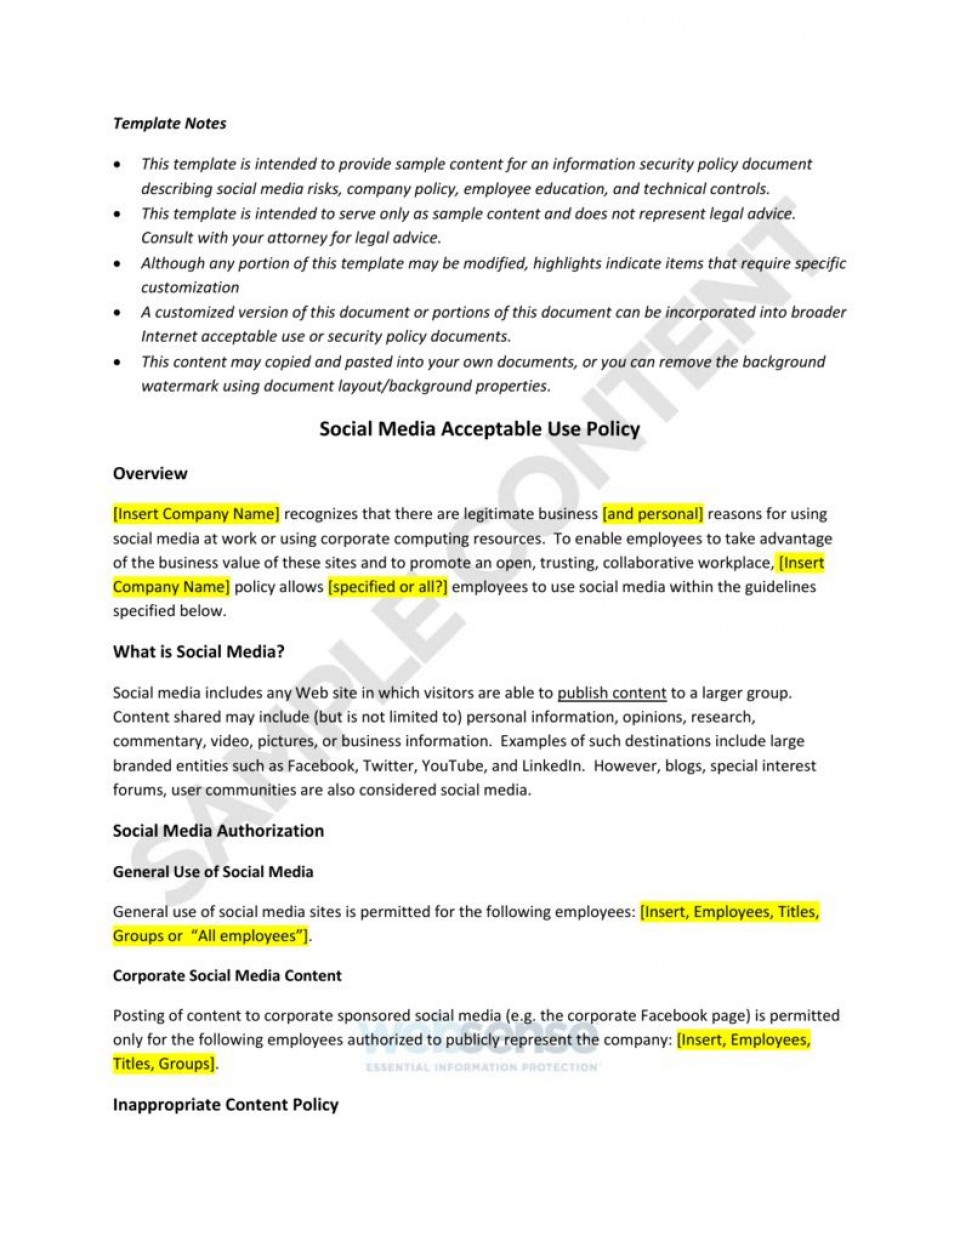 003 Amazing Social Media Policie Template High Definition  Simple Policy Australia Example For Small Busines960